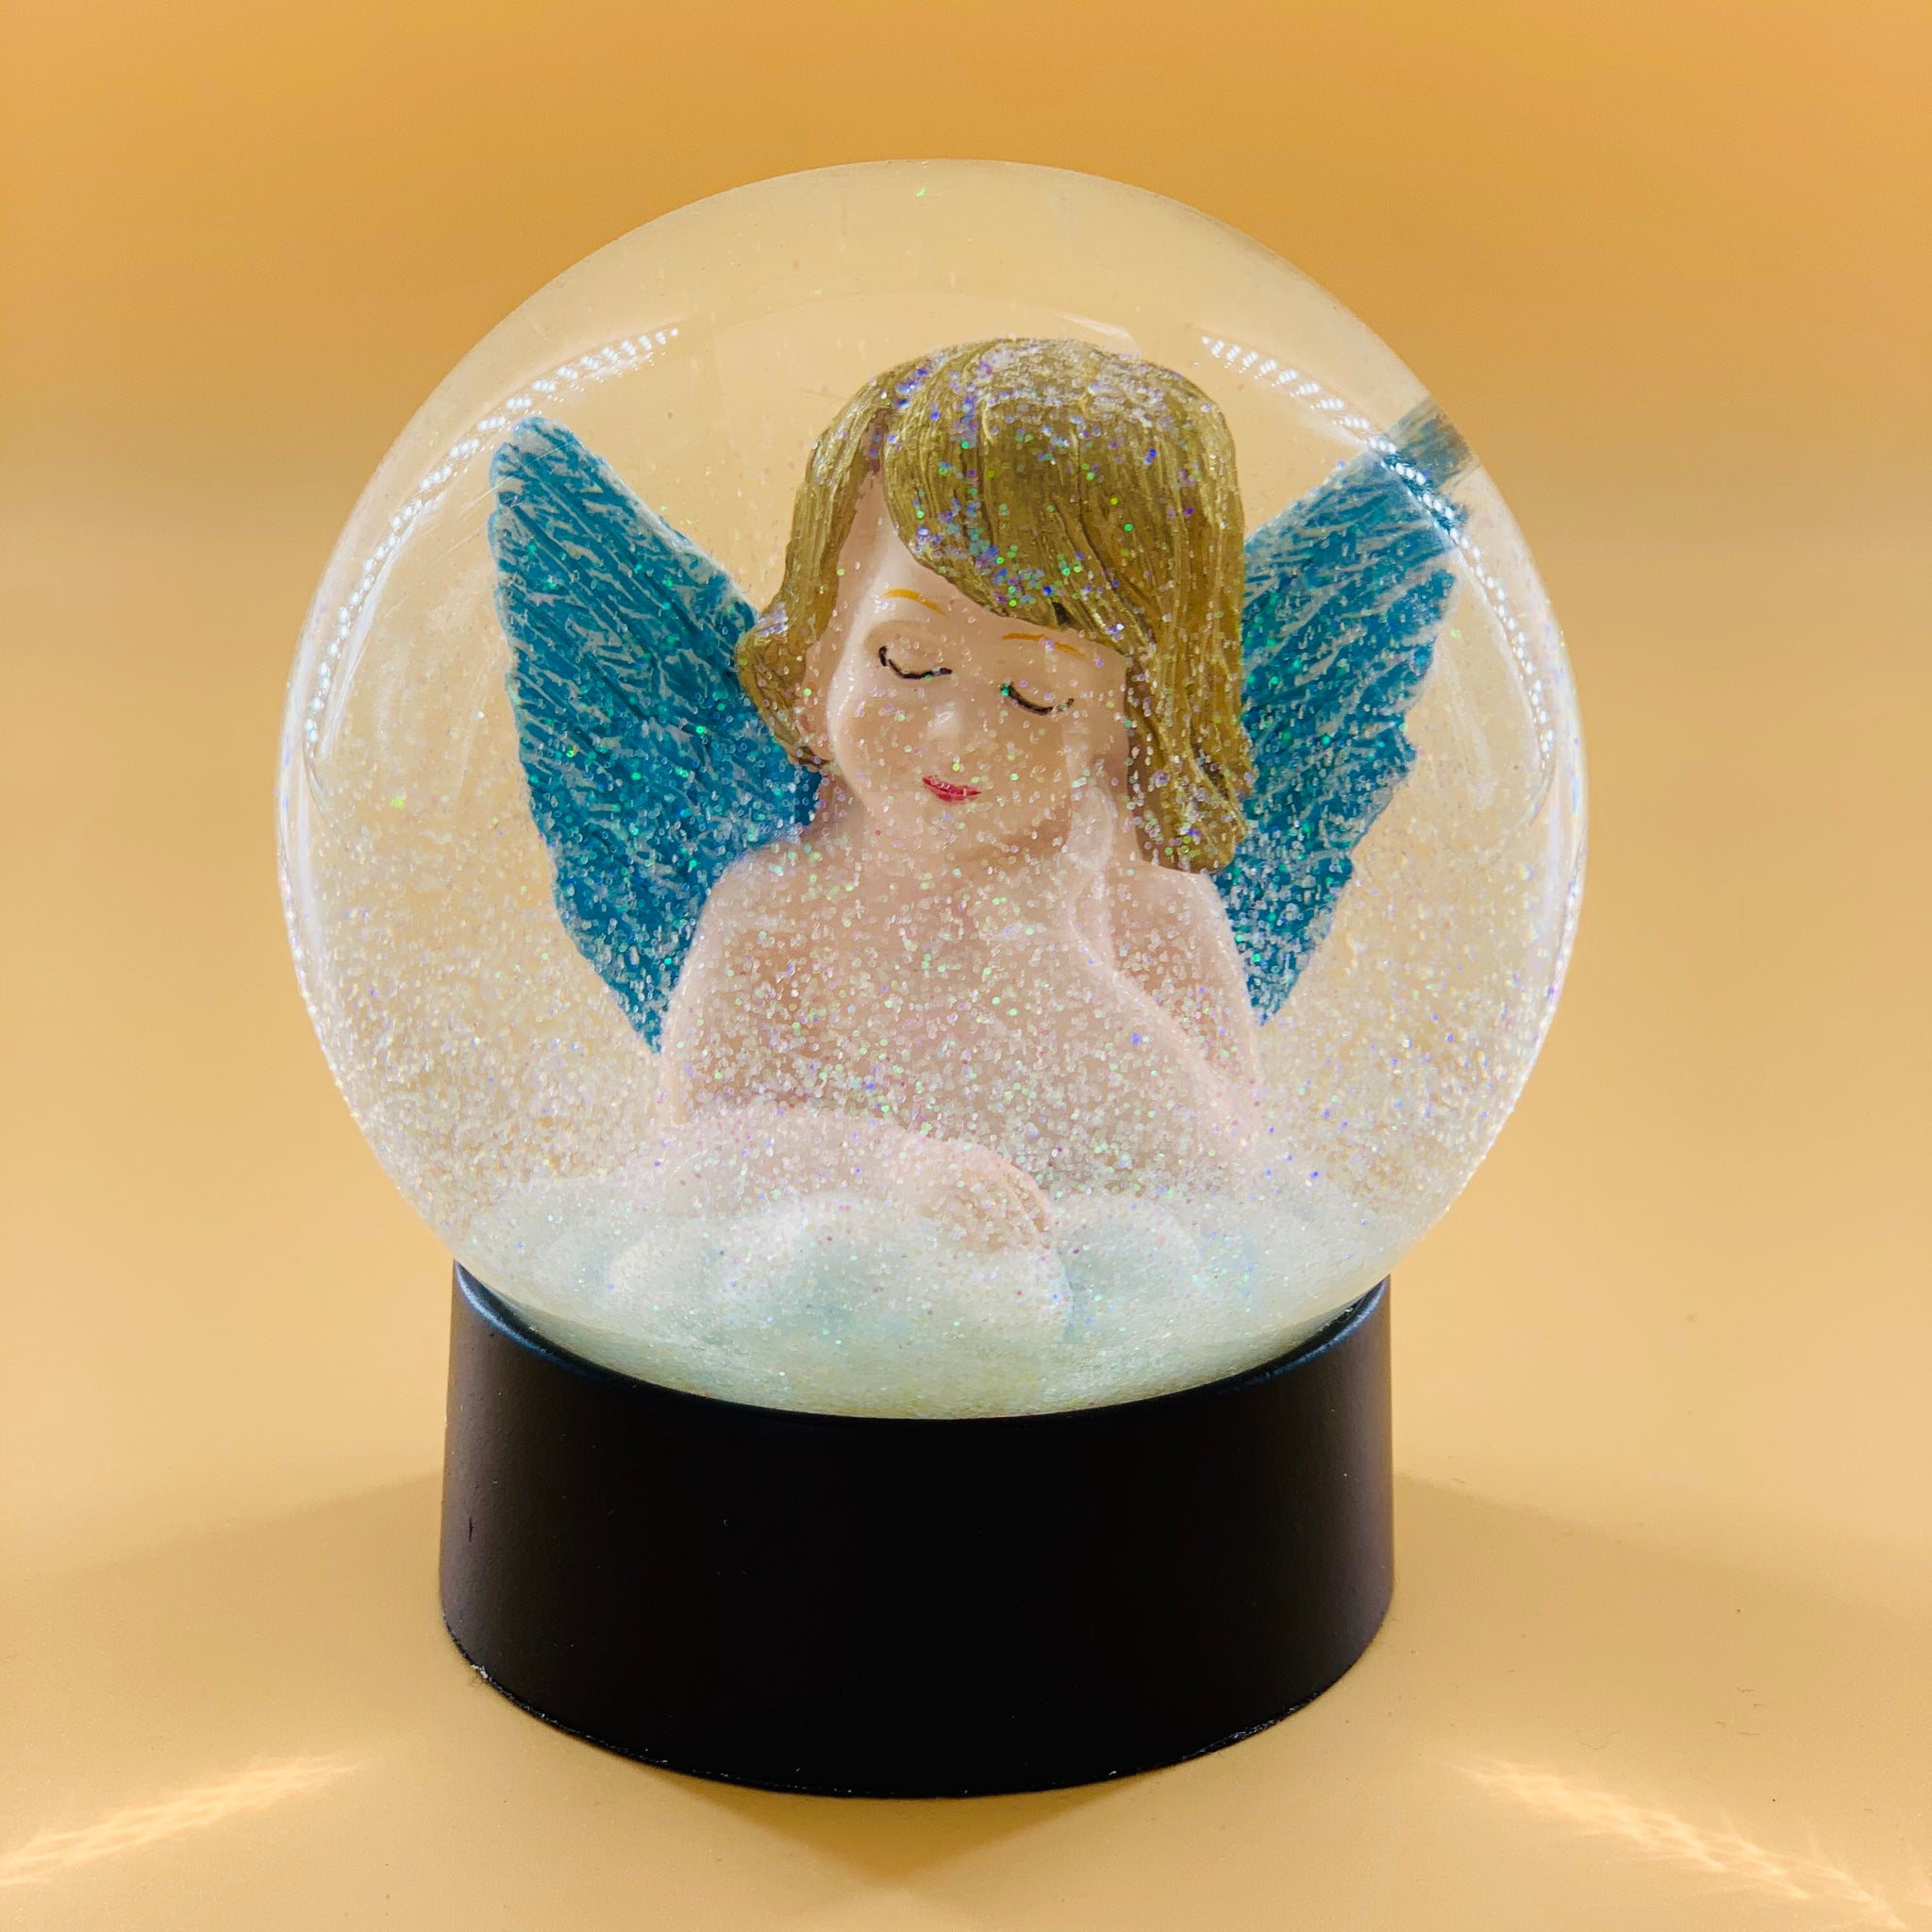 GLANSBILLED ENGEL BLÅ VINGER / BLUE ANGEL SNOW GLOBE